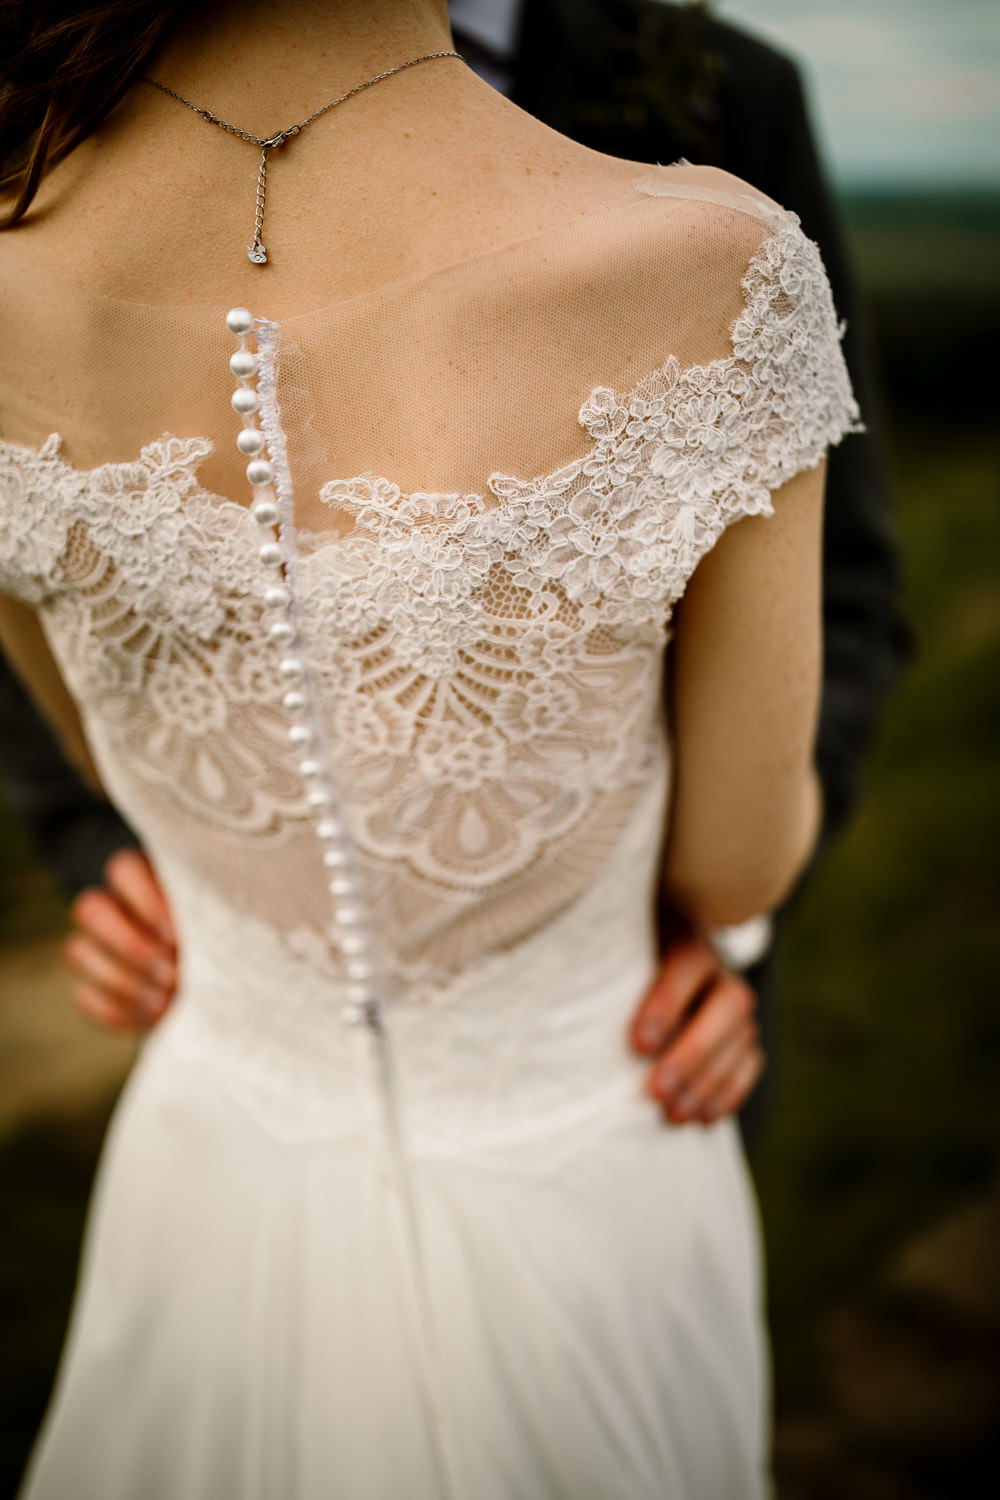 Bride Bridal Dress Gown Veil Rebecca Ingram Train Lace Back Buttons Yorkshire Barn Wedding Hayley Baxter Photography